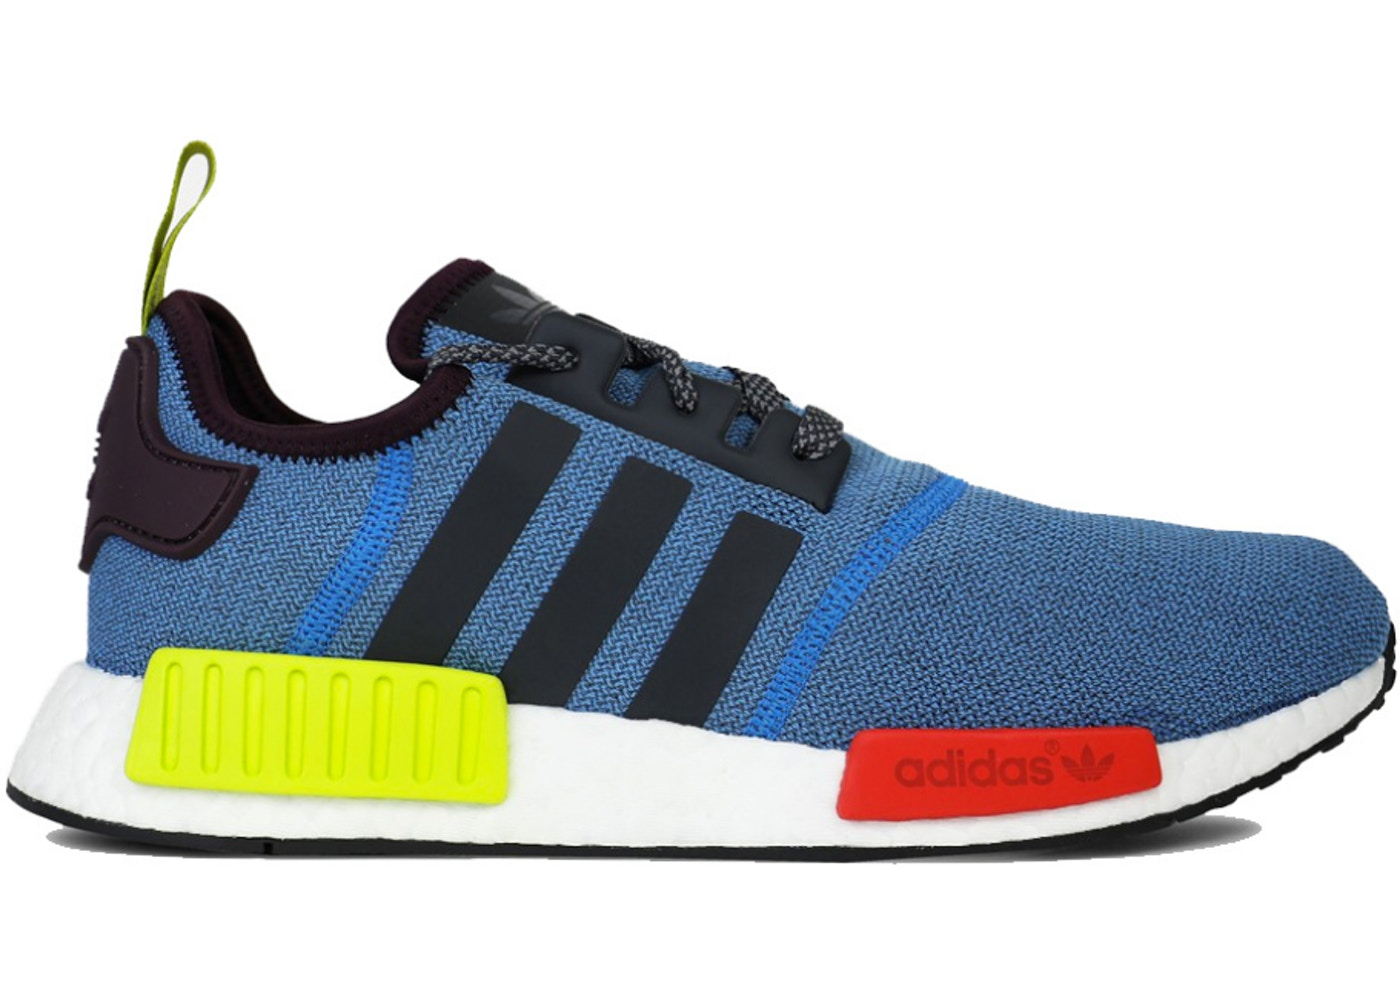 アディダス ADIDAS スニーカー 【 NMD R1 VILLA CERULEAN BRIGHT RED SHOCK GREEN WHITE 】 メンズ